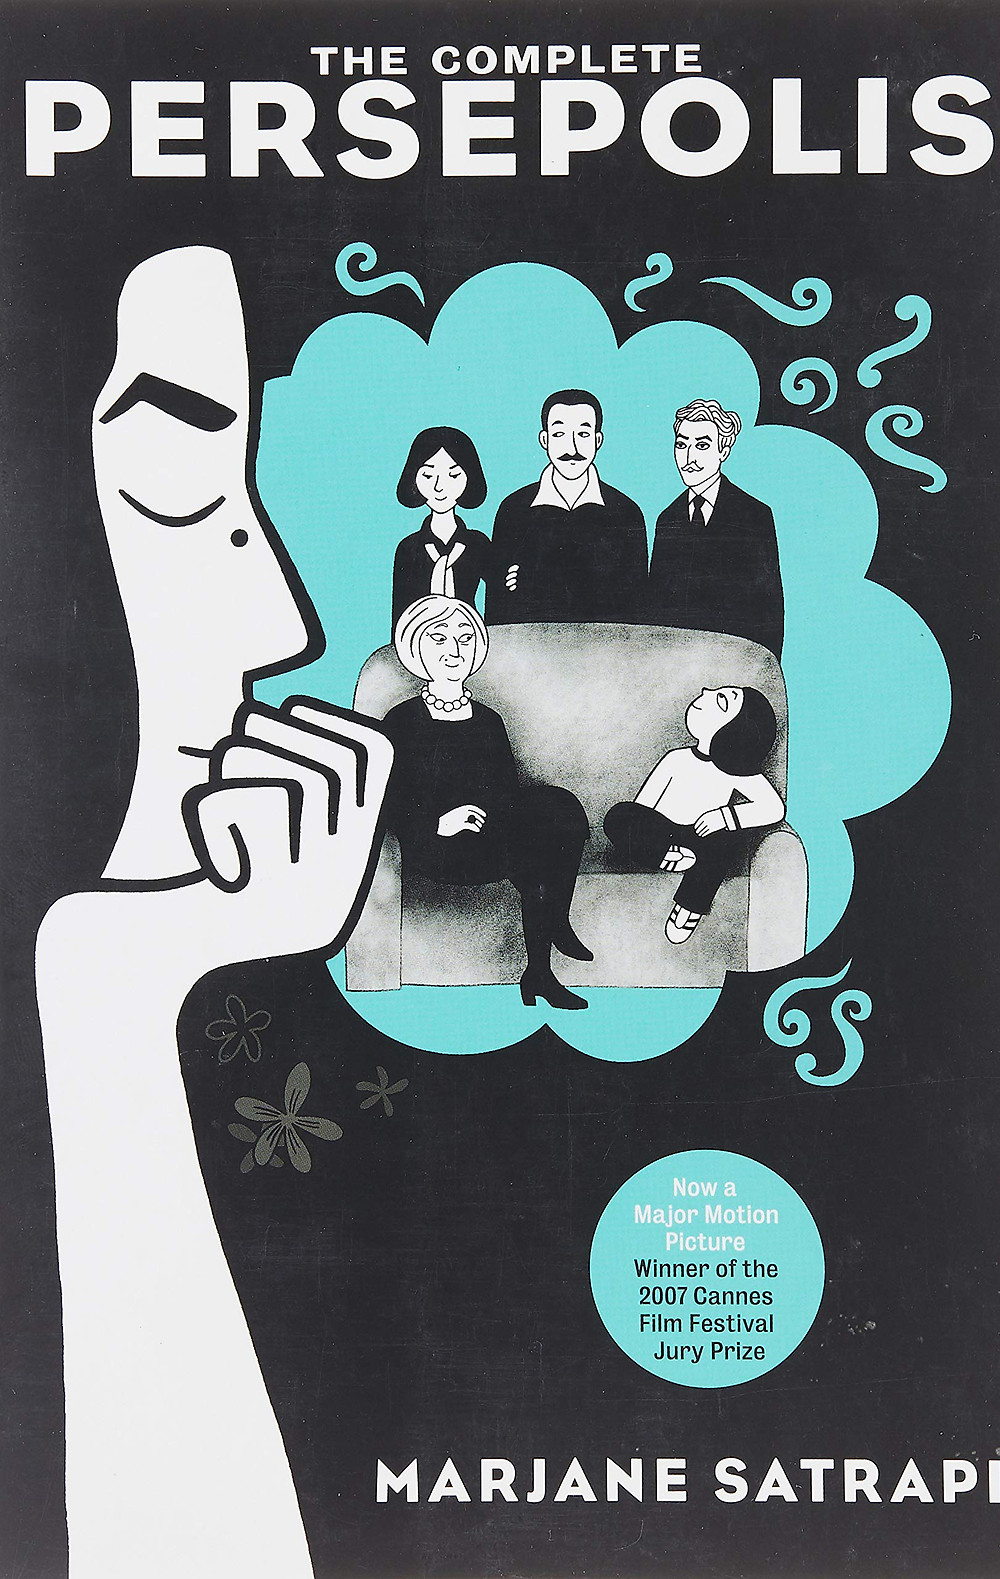 The cover of The Complete Persepolis featuring a woman's profile on the left side. She faces a blue thought bubble. A family portrait appears in the bubble with a woman and two men standing behind a couch on which sit an elderly woman and a young girl.